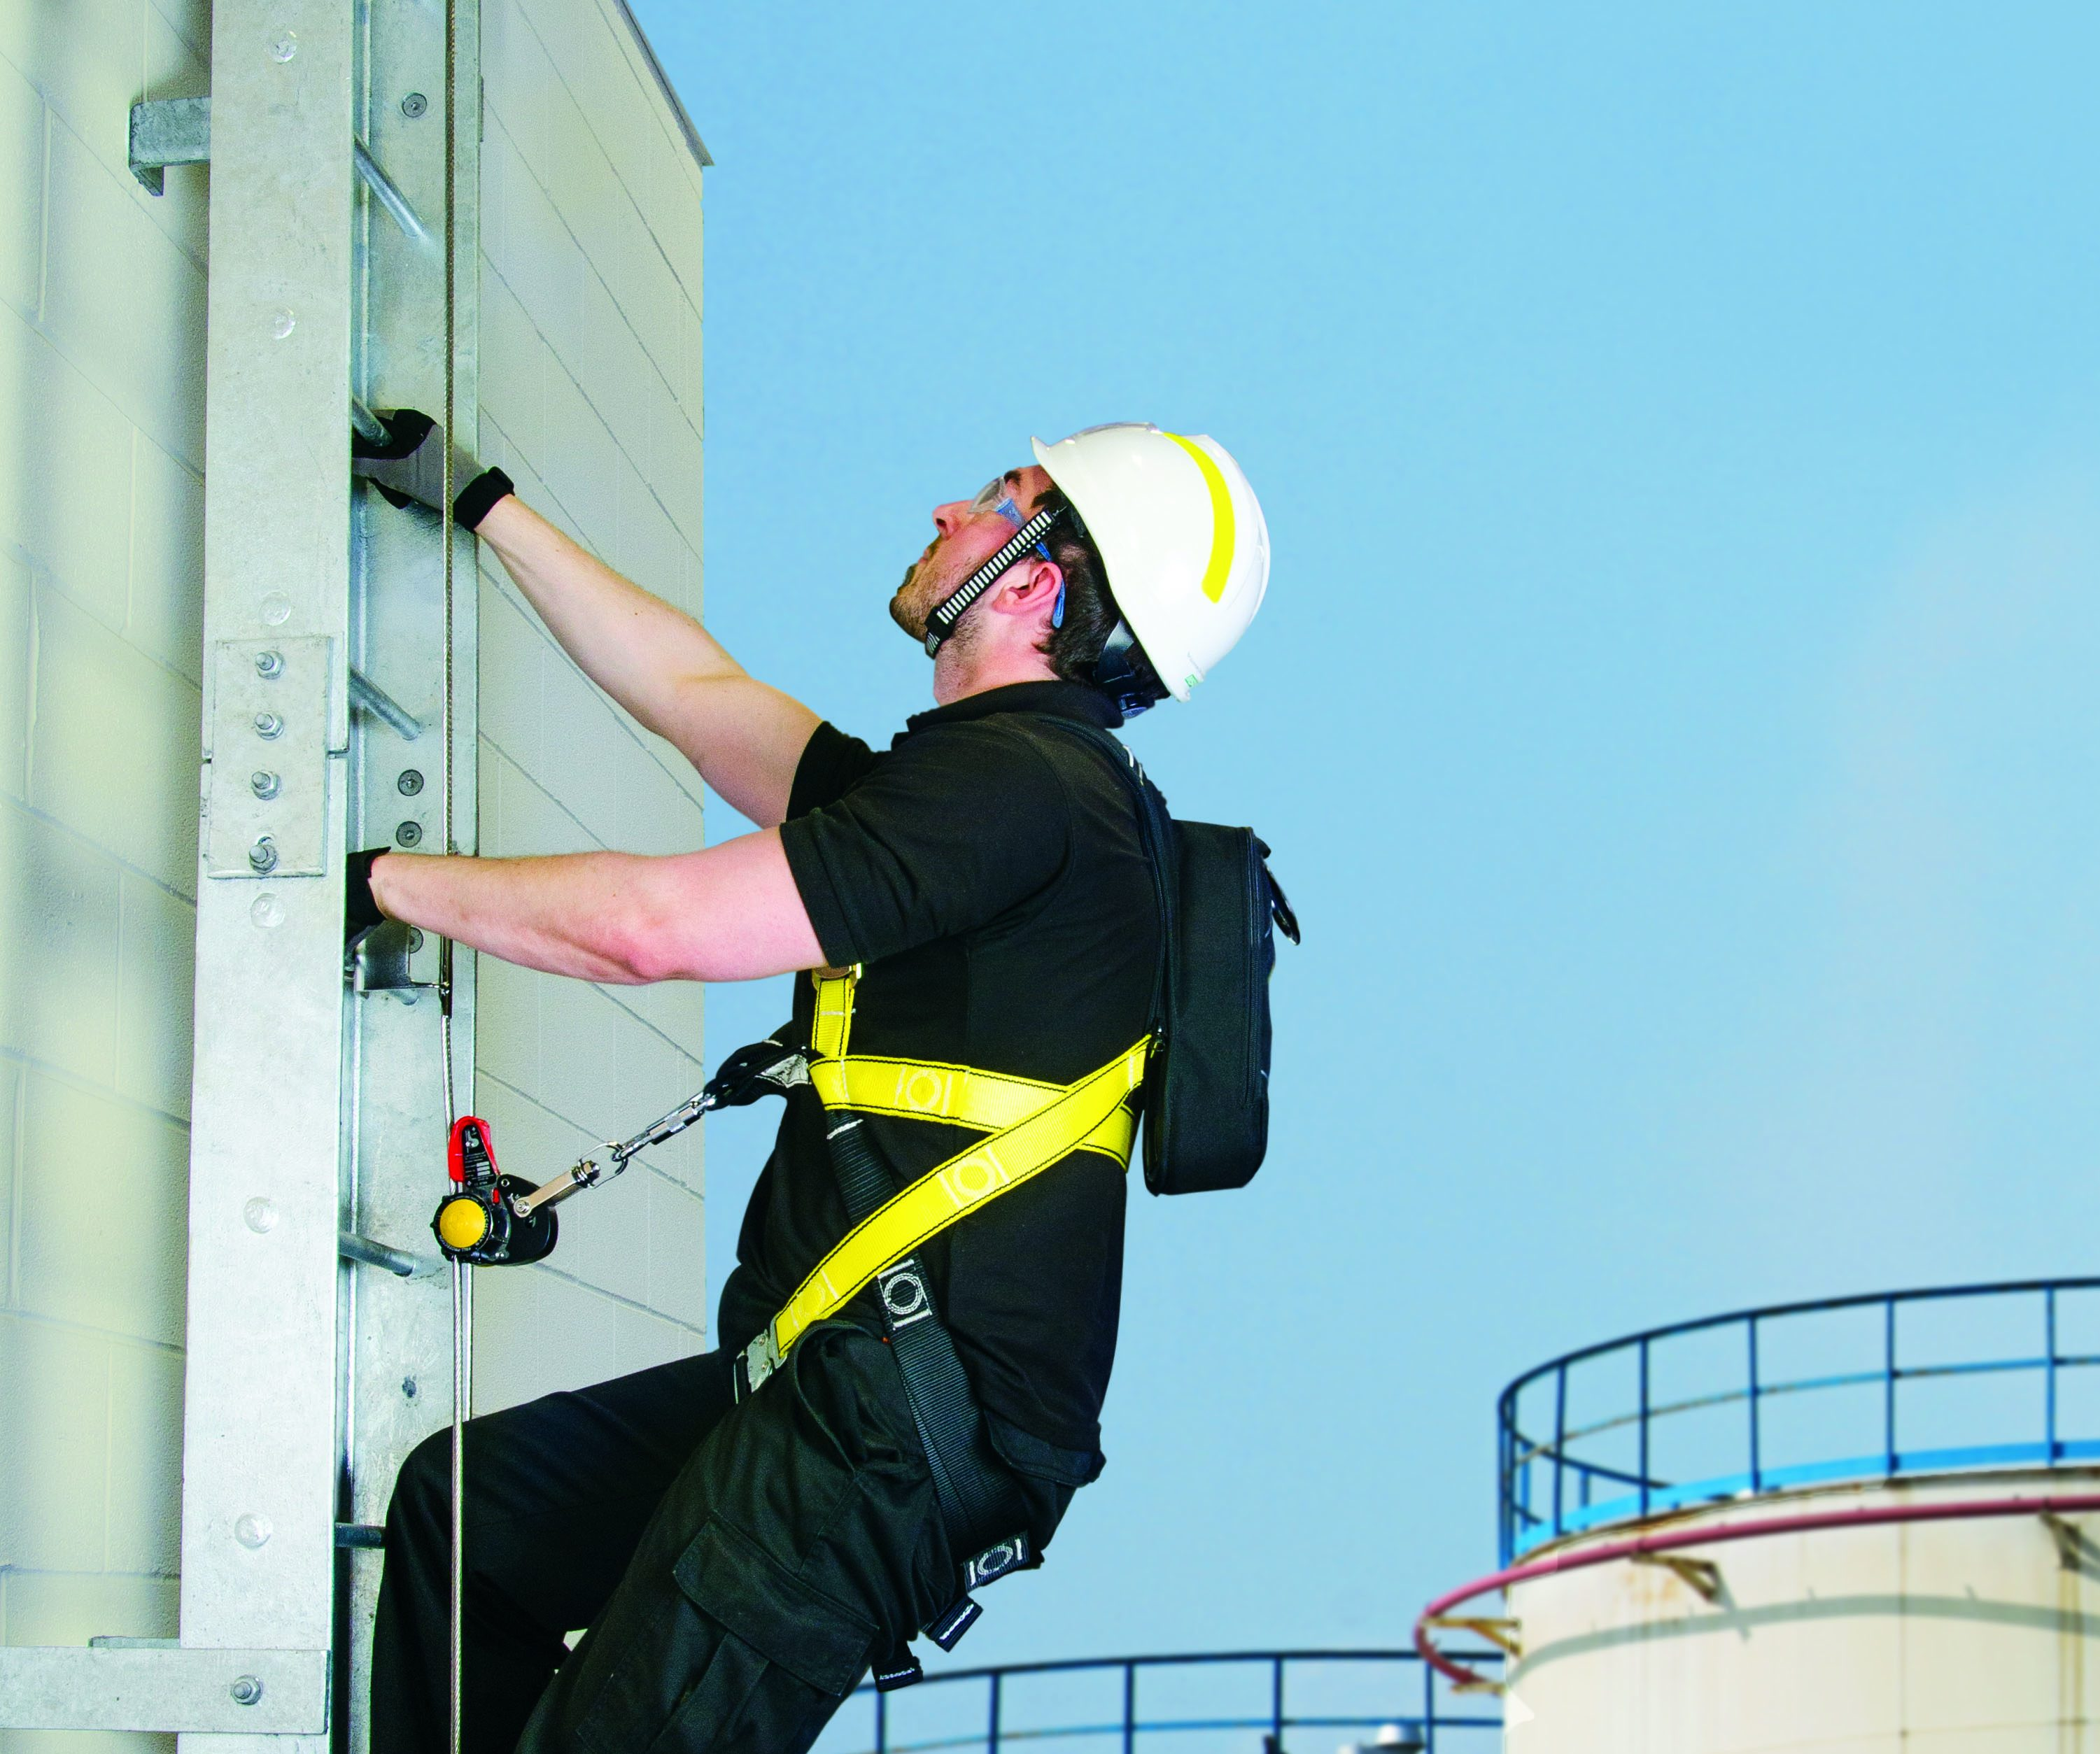 MSA Safety - setting the benchmark for the toughest EN standards